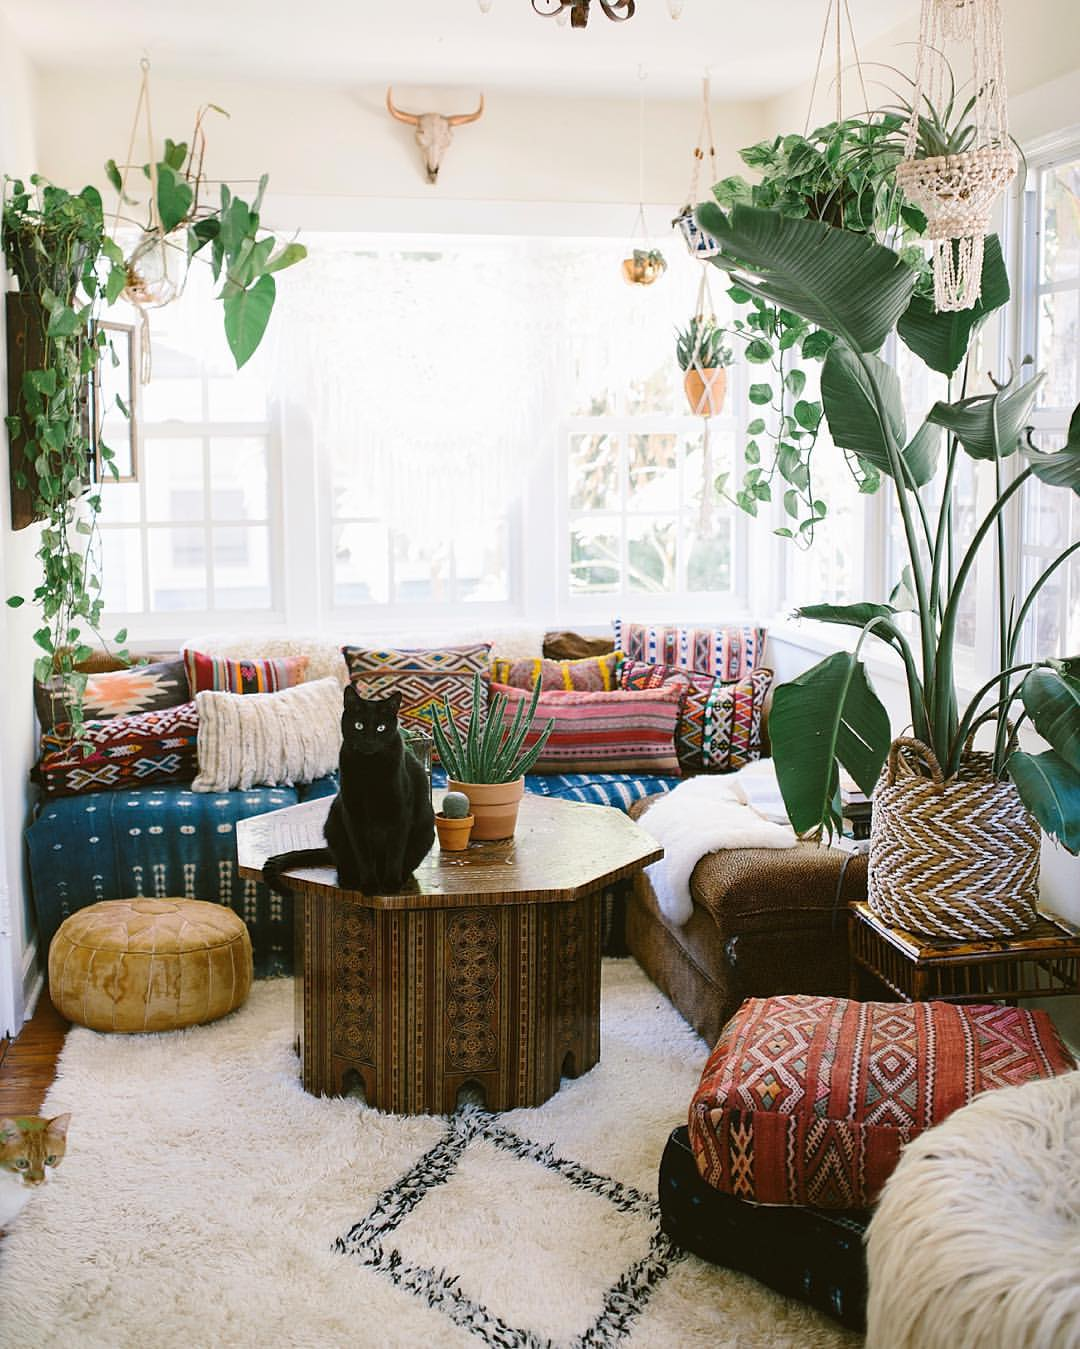 How To Decorate A Bohemian Living Room In 5 Easy Steps